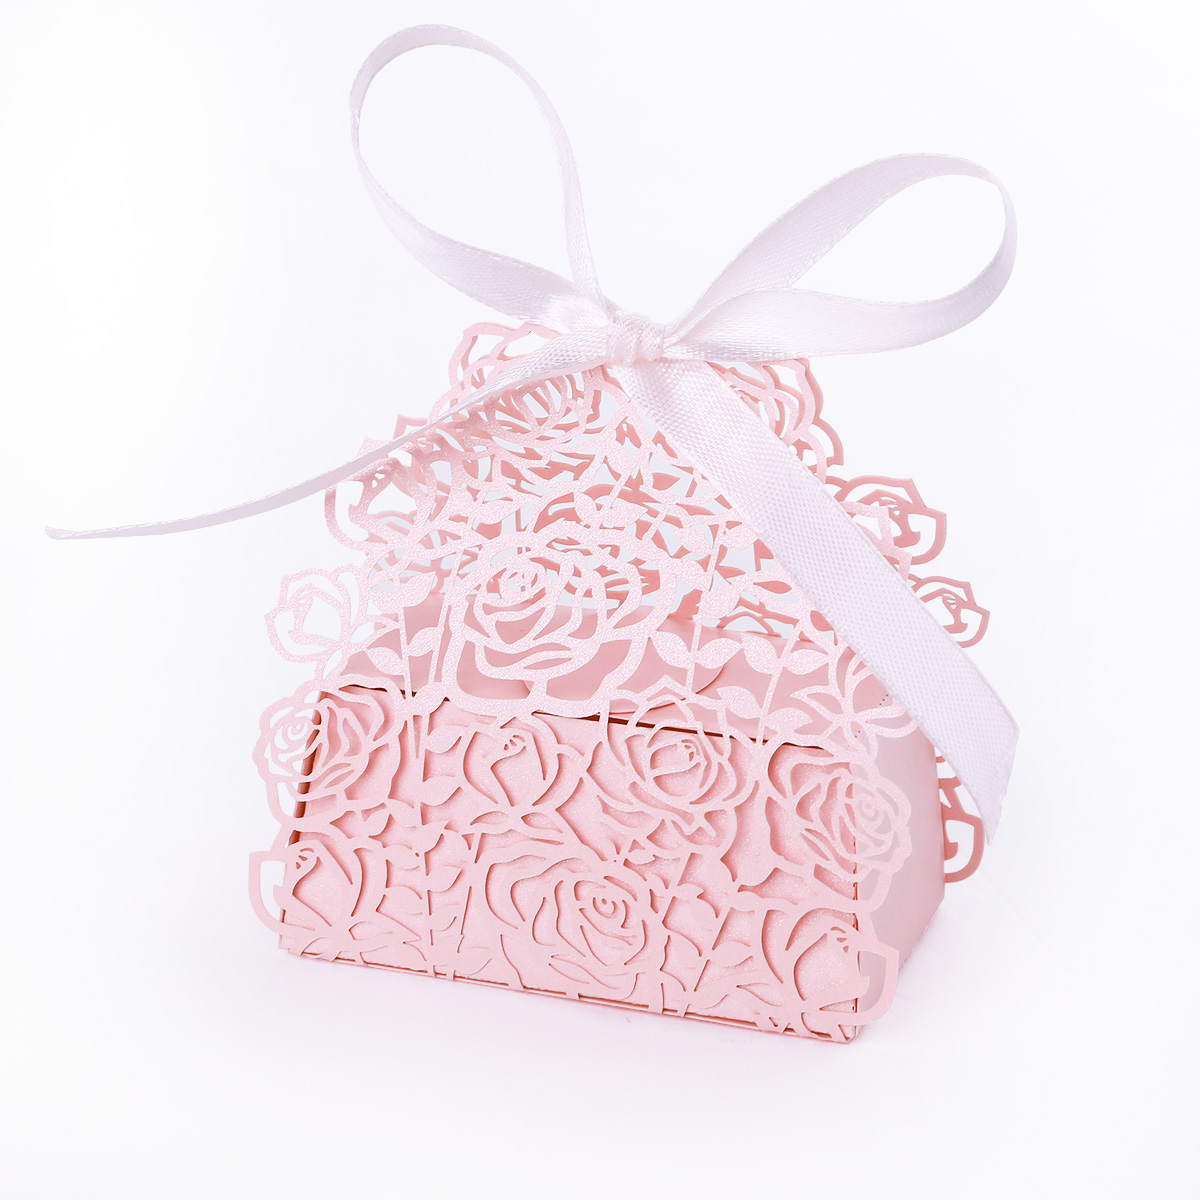 25 Romantic Rose Laser Cut Bomboniere Boxes Wedding Favor Shower ...